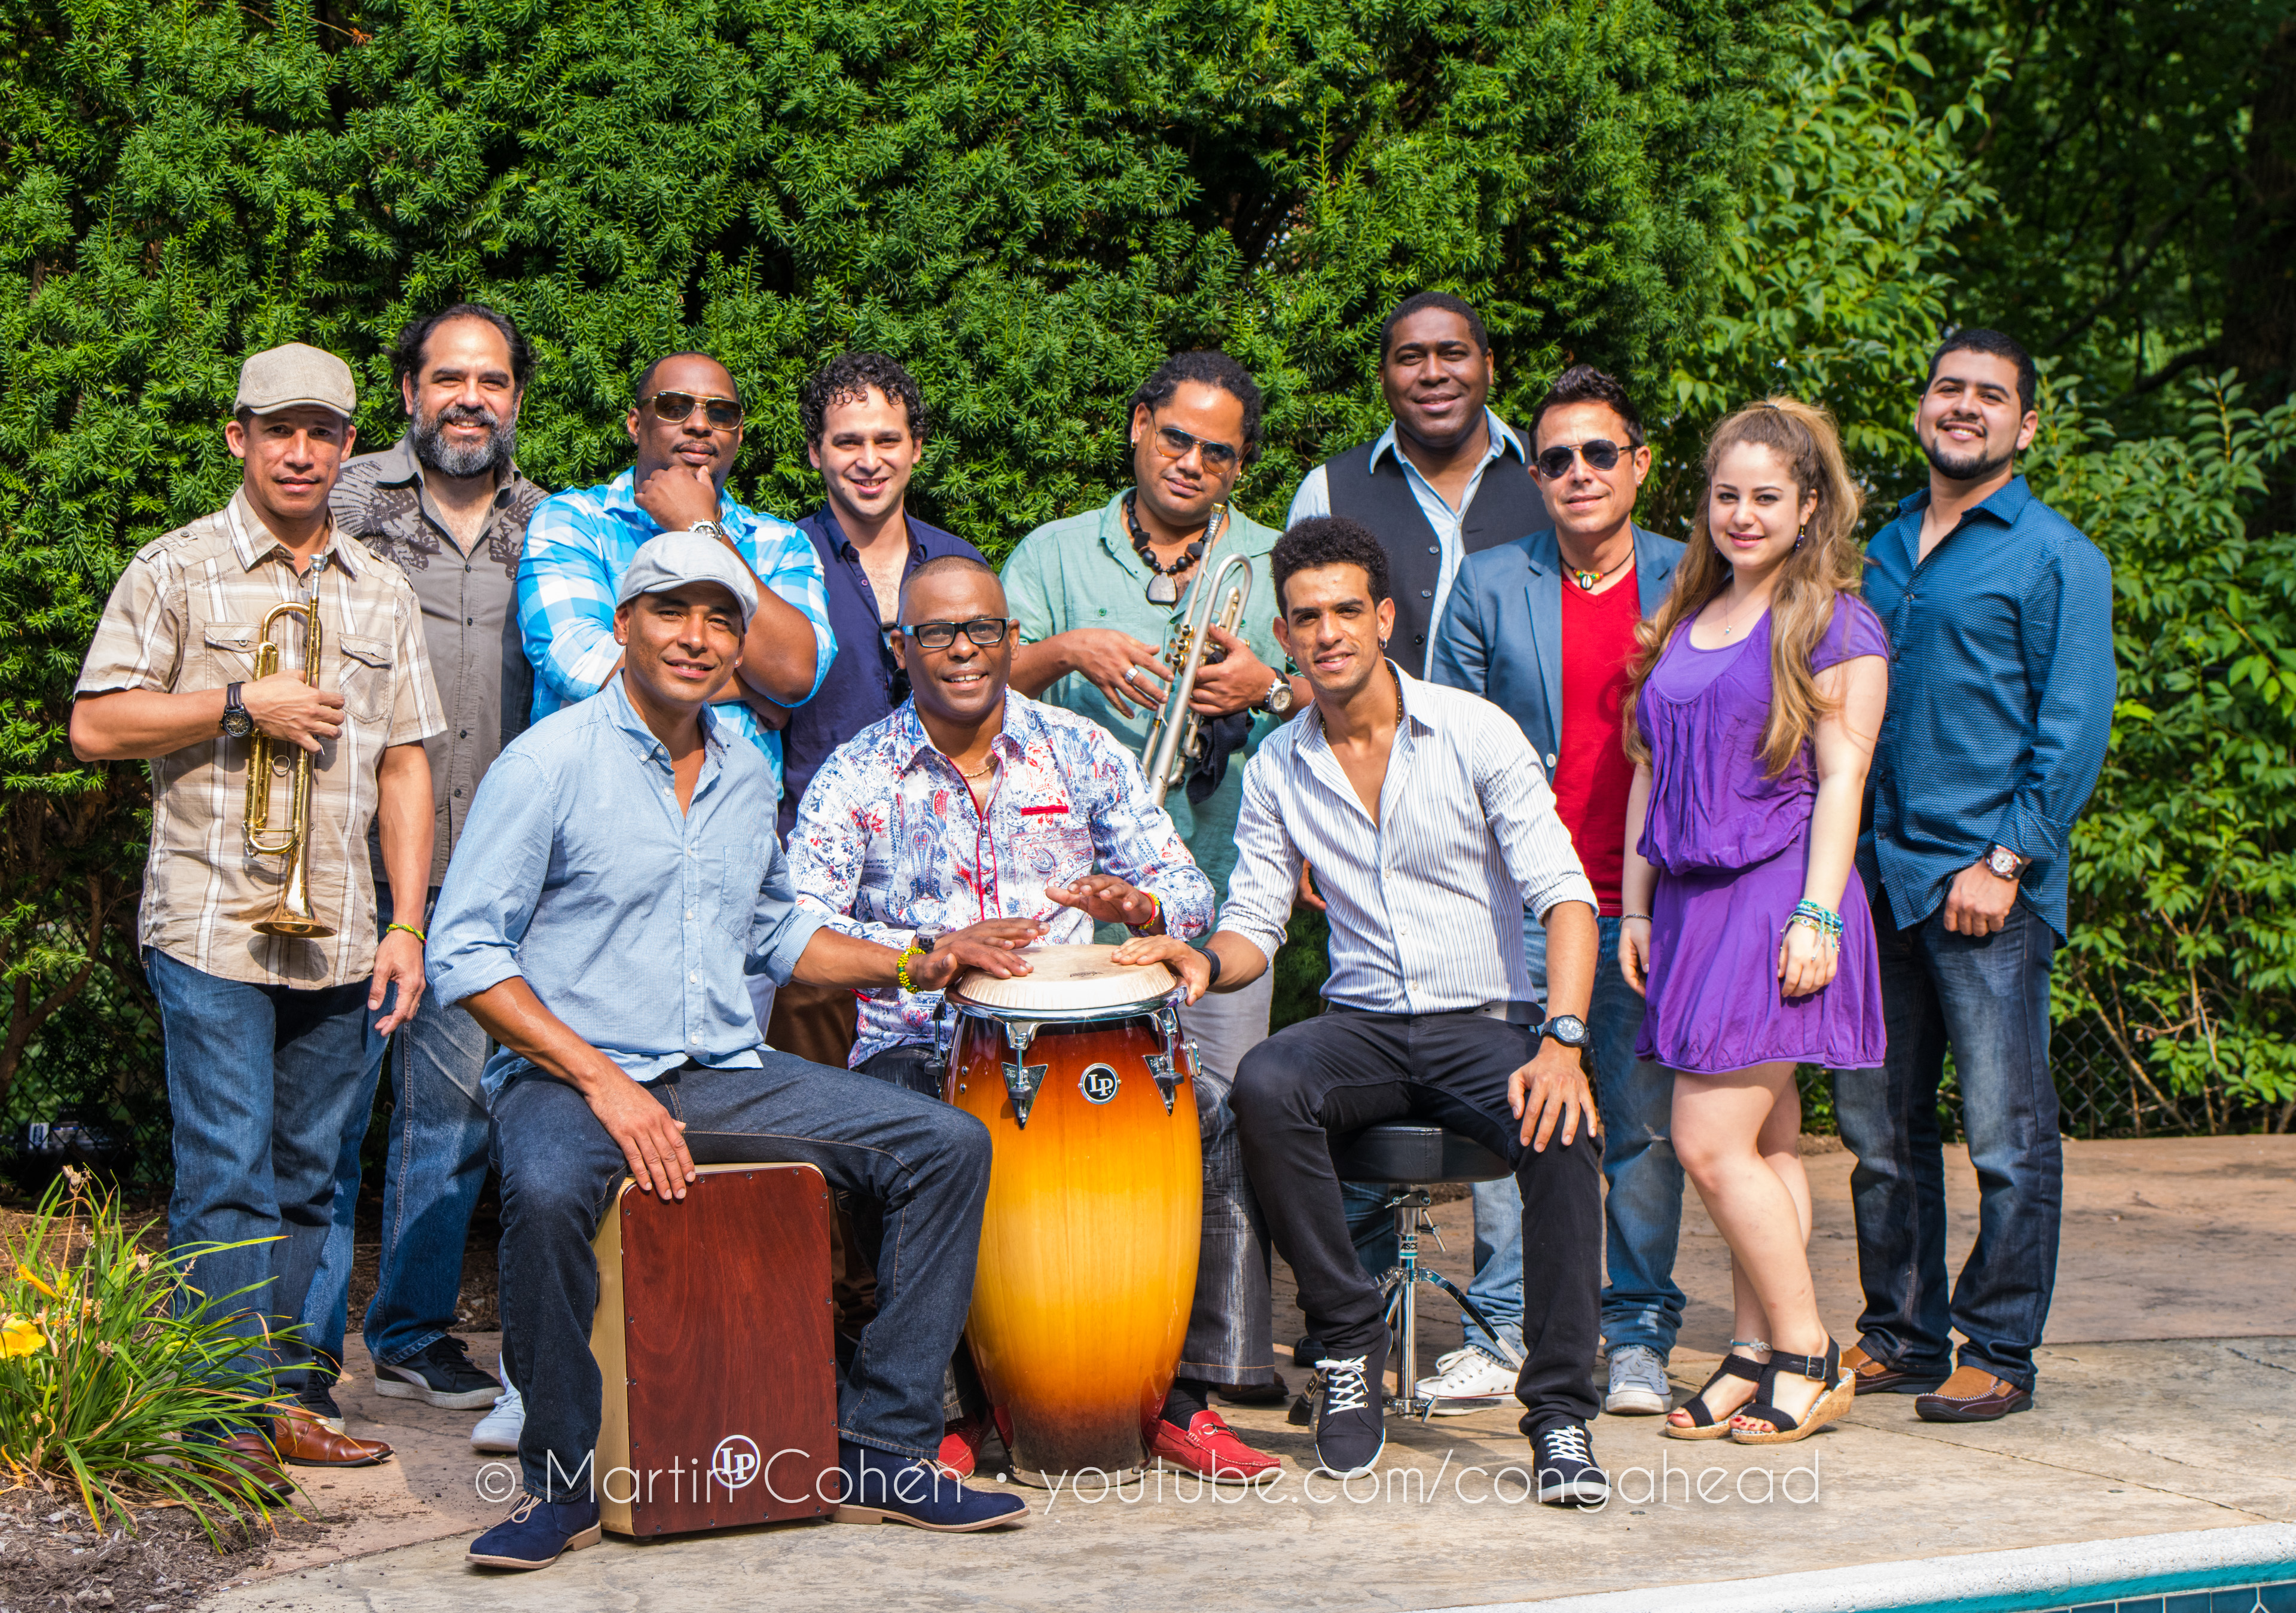 Miguel Valdes & The N.Y. Cuban Boys perform at Congahead Studio